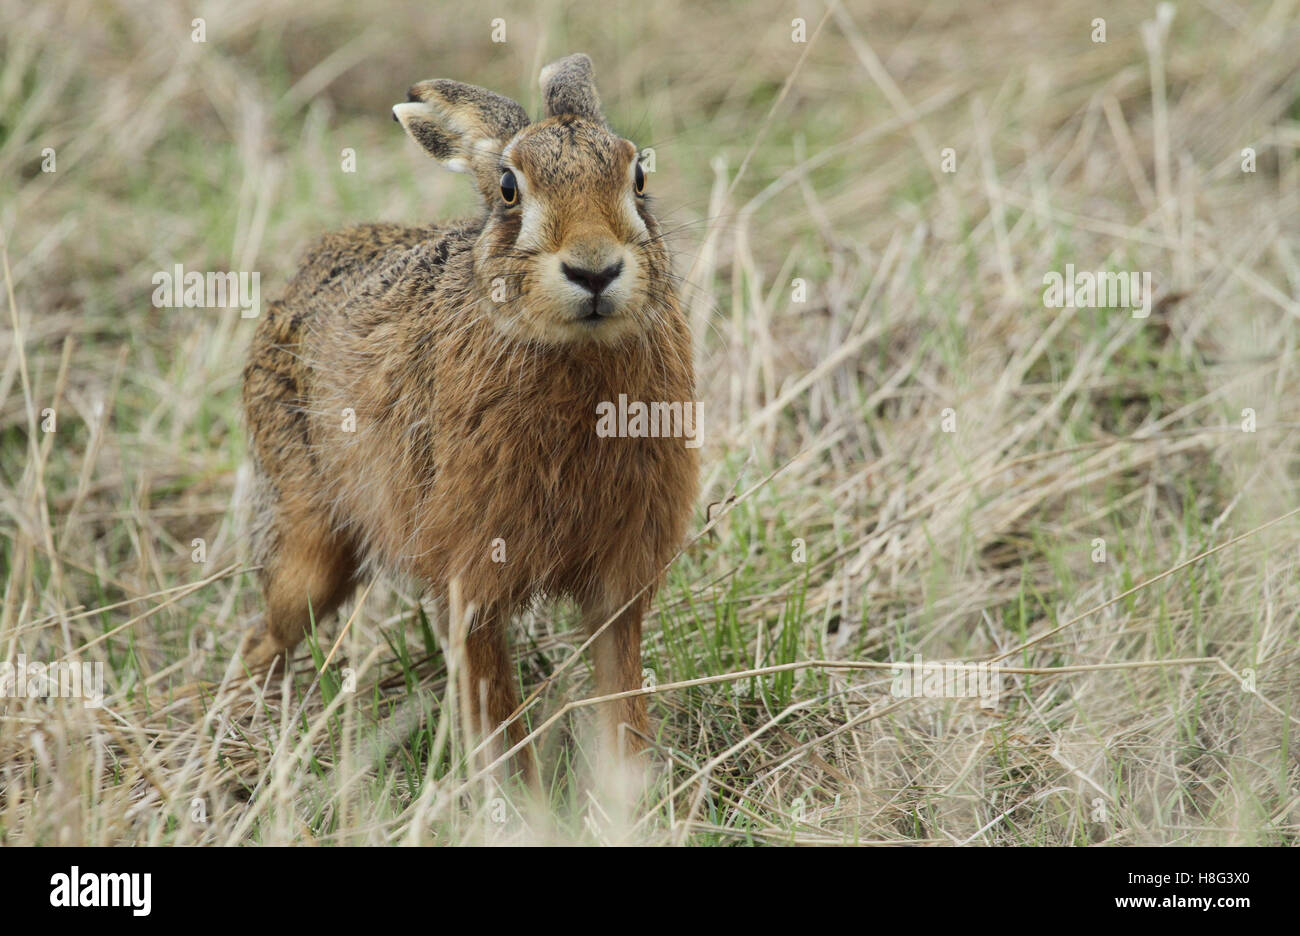 A Brown Hare (Lepus europaeus) standing in a field of long grass. - Stock Image